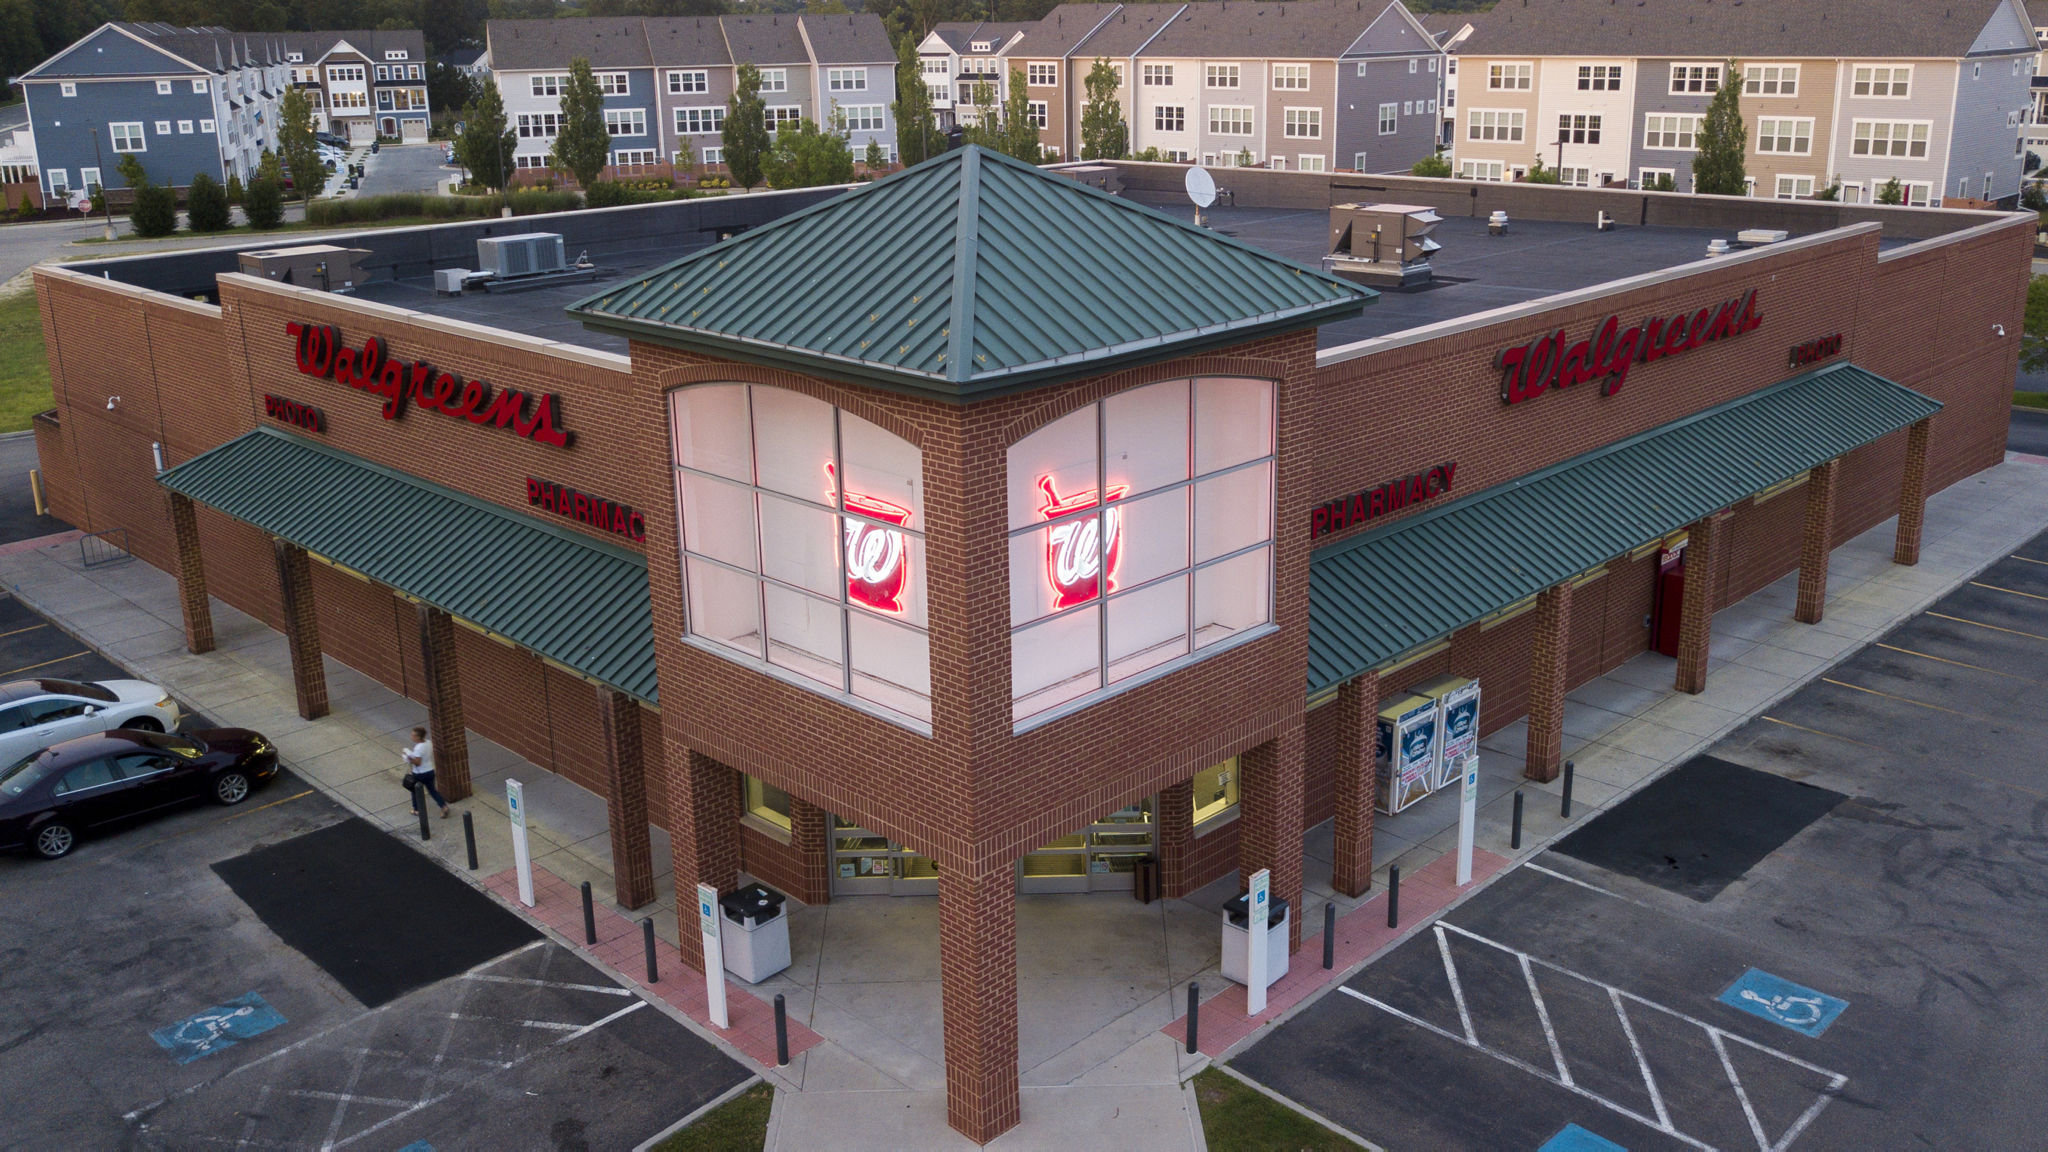 cheap popular stores beauty Walgreens Boots Alliance explores $70bn buyout | Financial Times